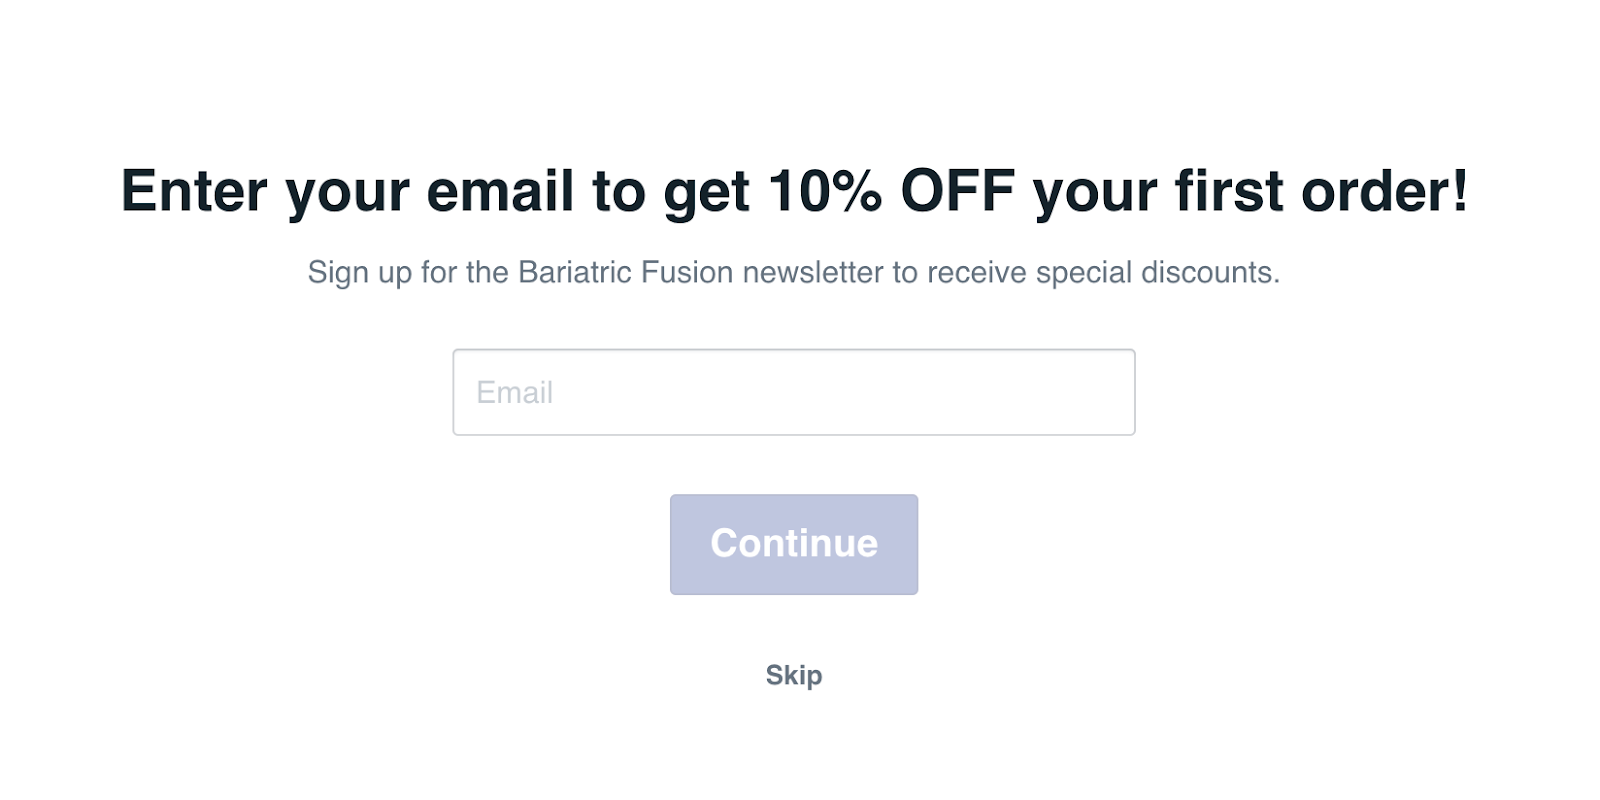 Screenshot of Bariatric Fusion's quiz that asks for the customer's email to give them 10% off their order